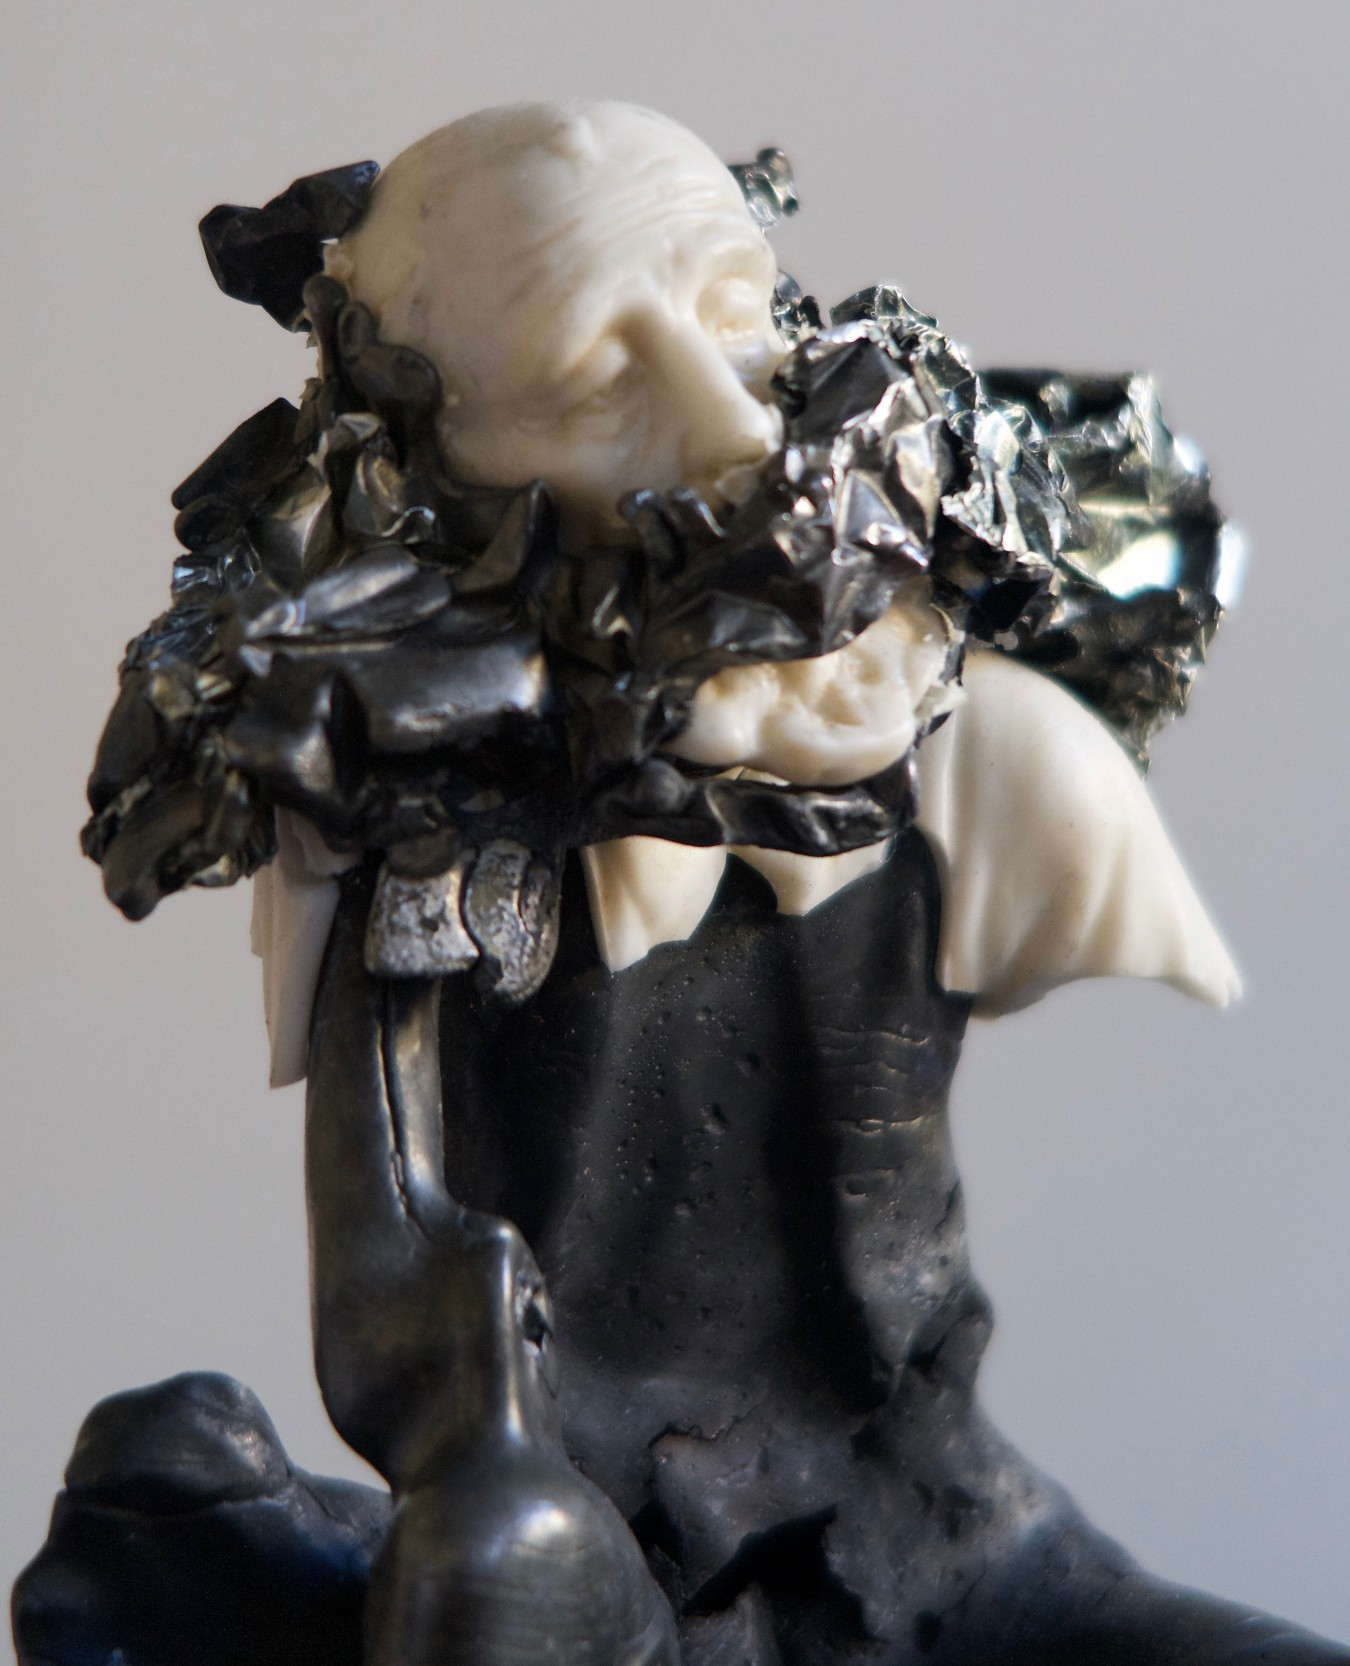 Image of a white porcelian figure of an old gentleman sitting down. The slipcast figure has been filled with molet pewter and resulting explosion recorded. The petwer core has been patinated black